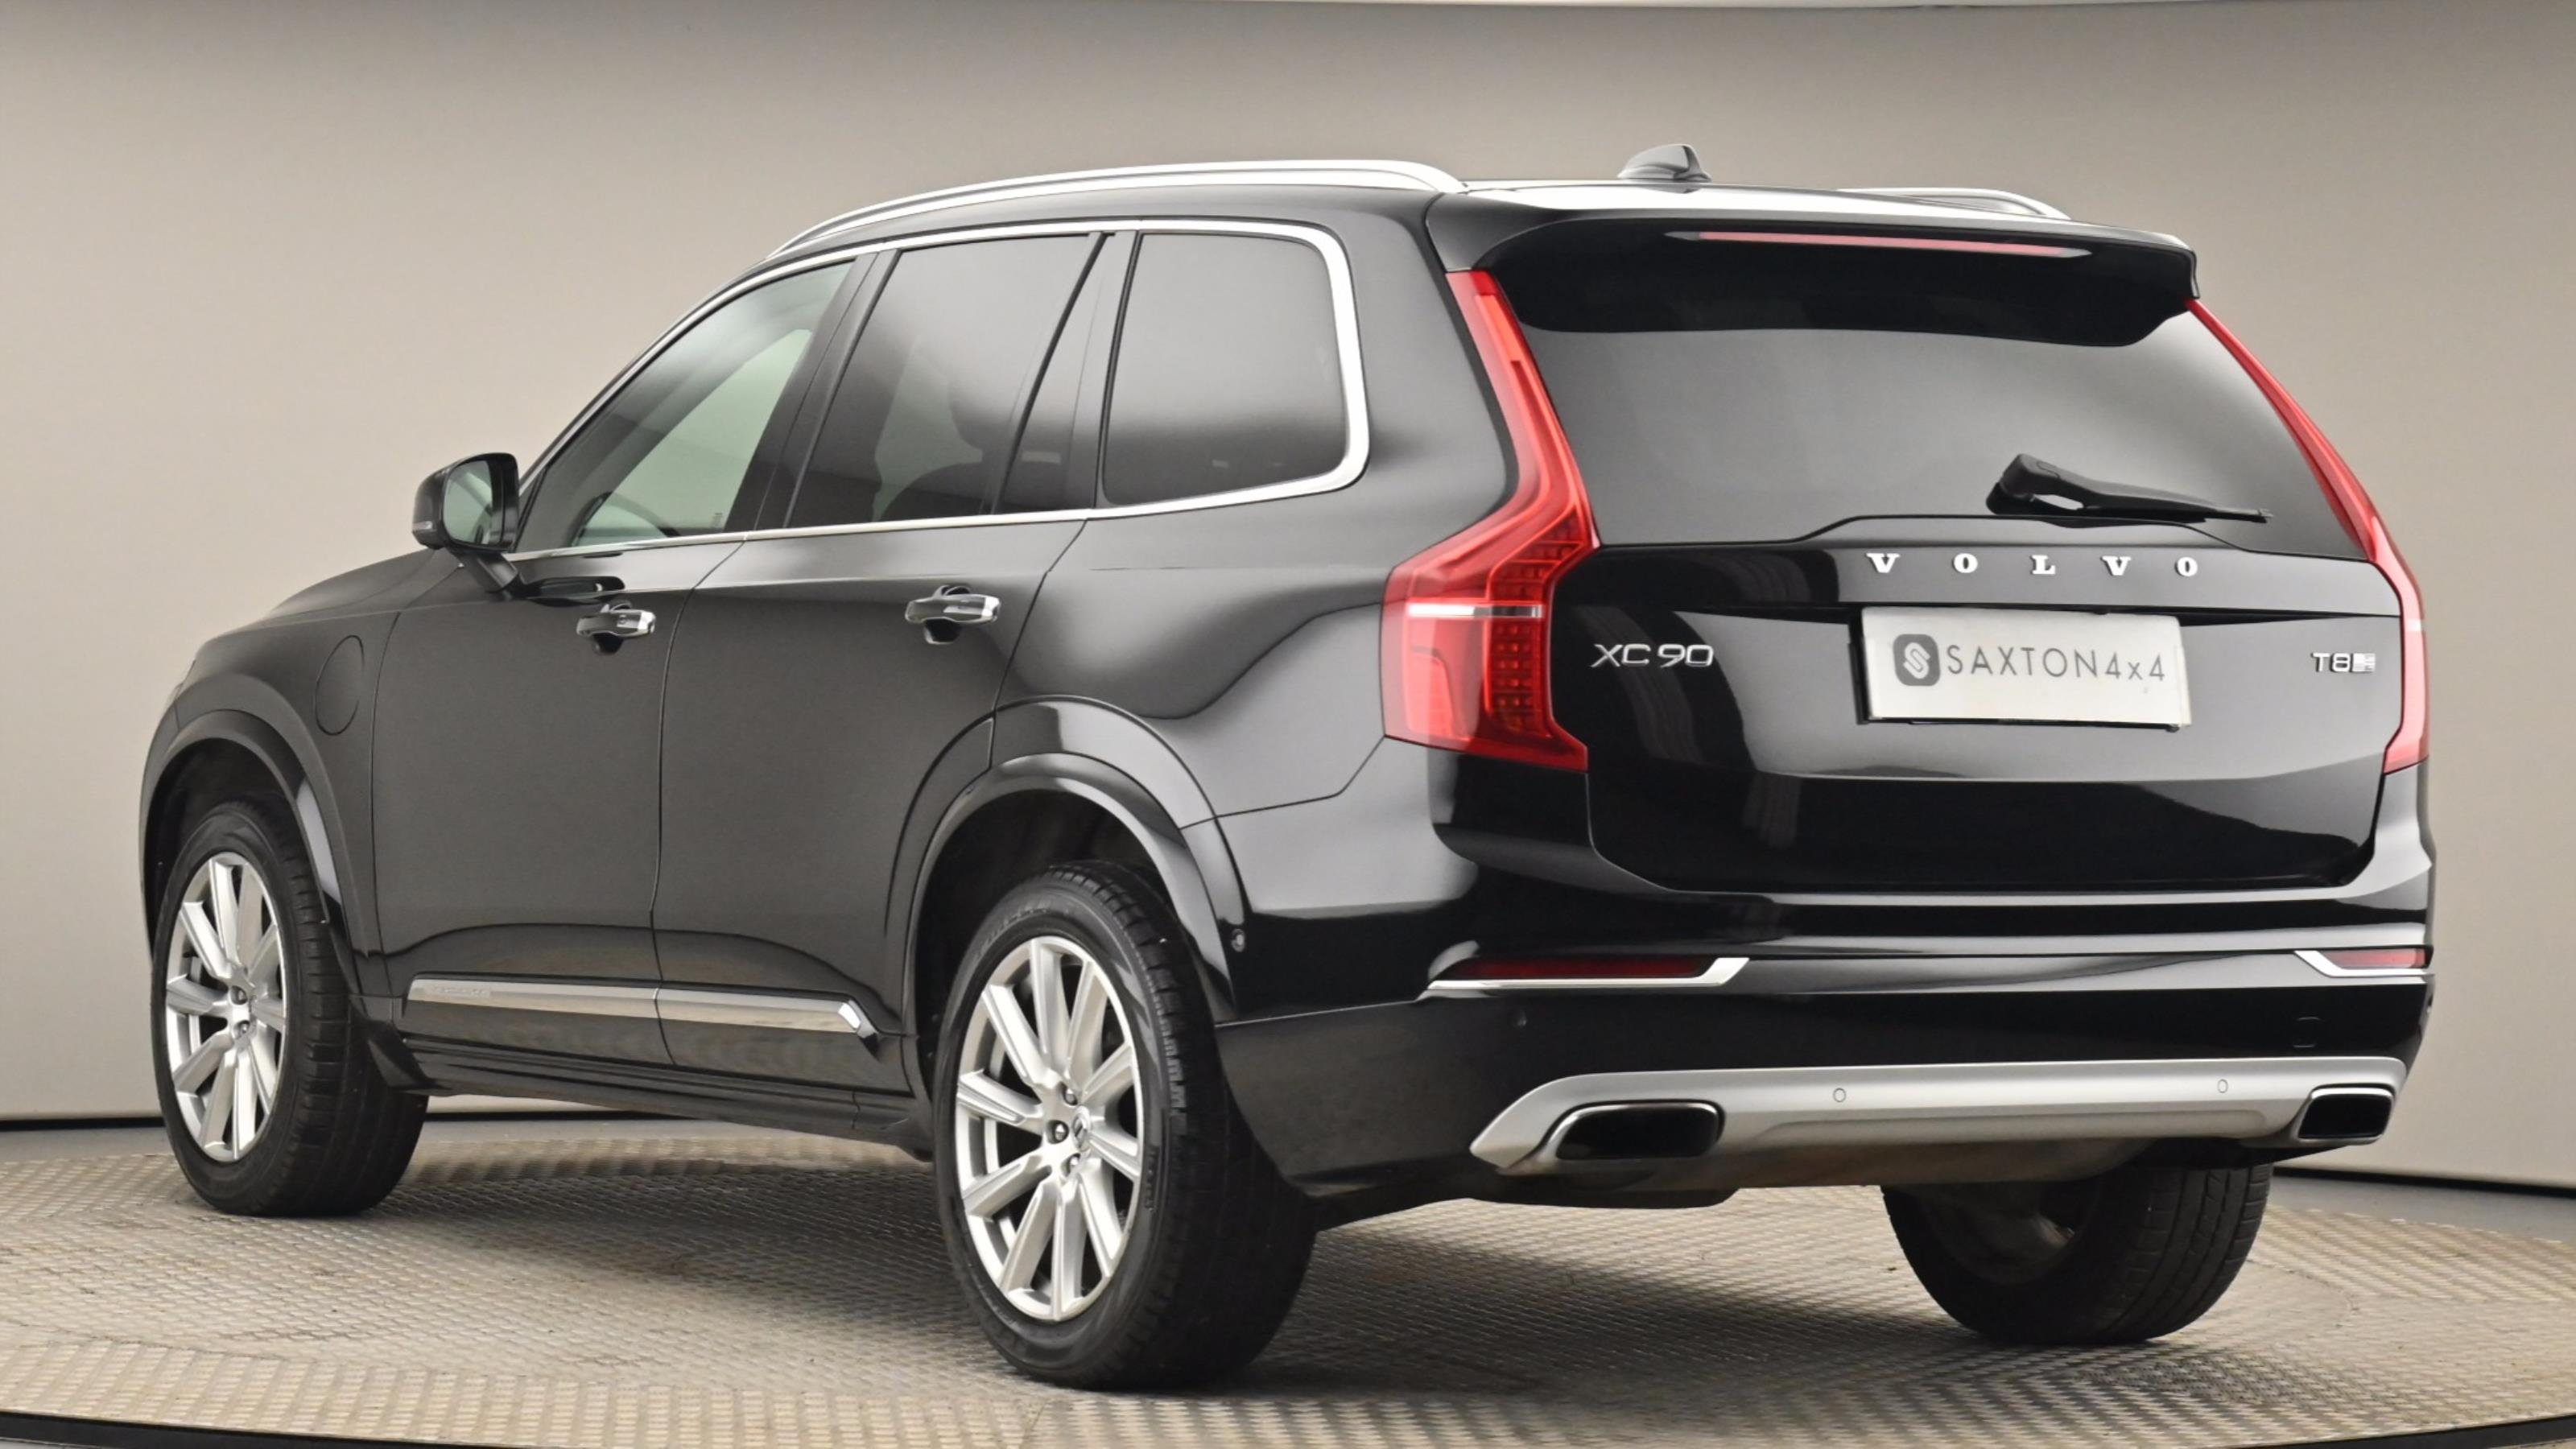 Used 2016 Volvo XC90 2.0 T8 Hybrid Inscription 5dr Geartronic BLACK at Saxton4x4